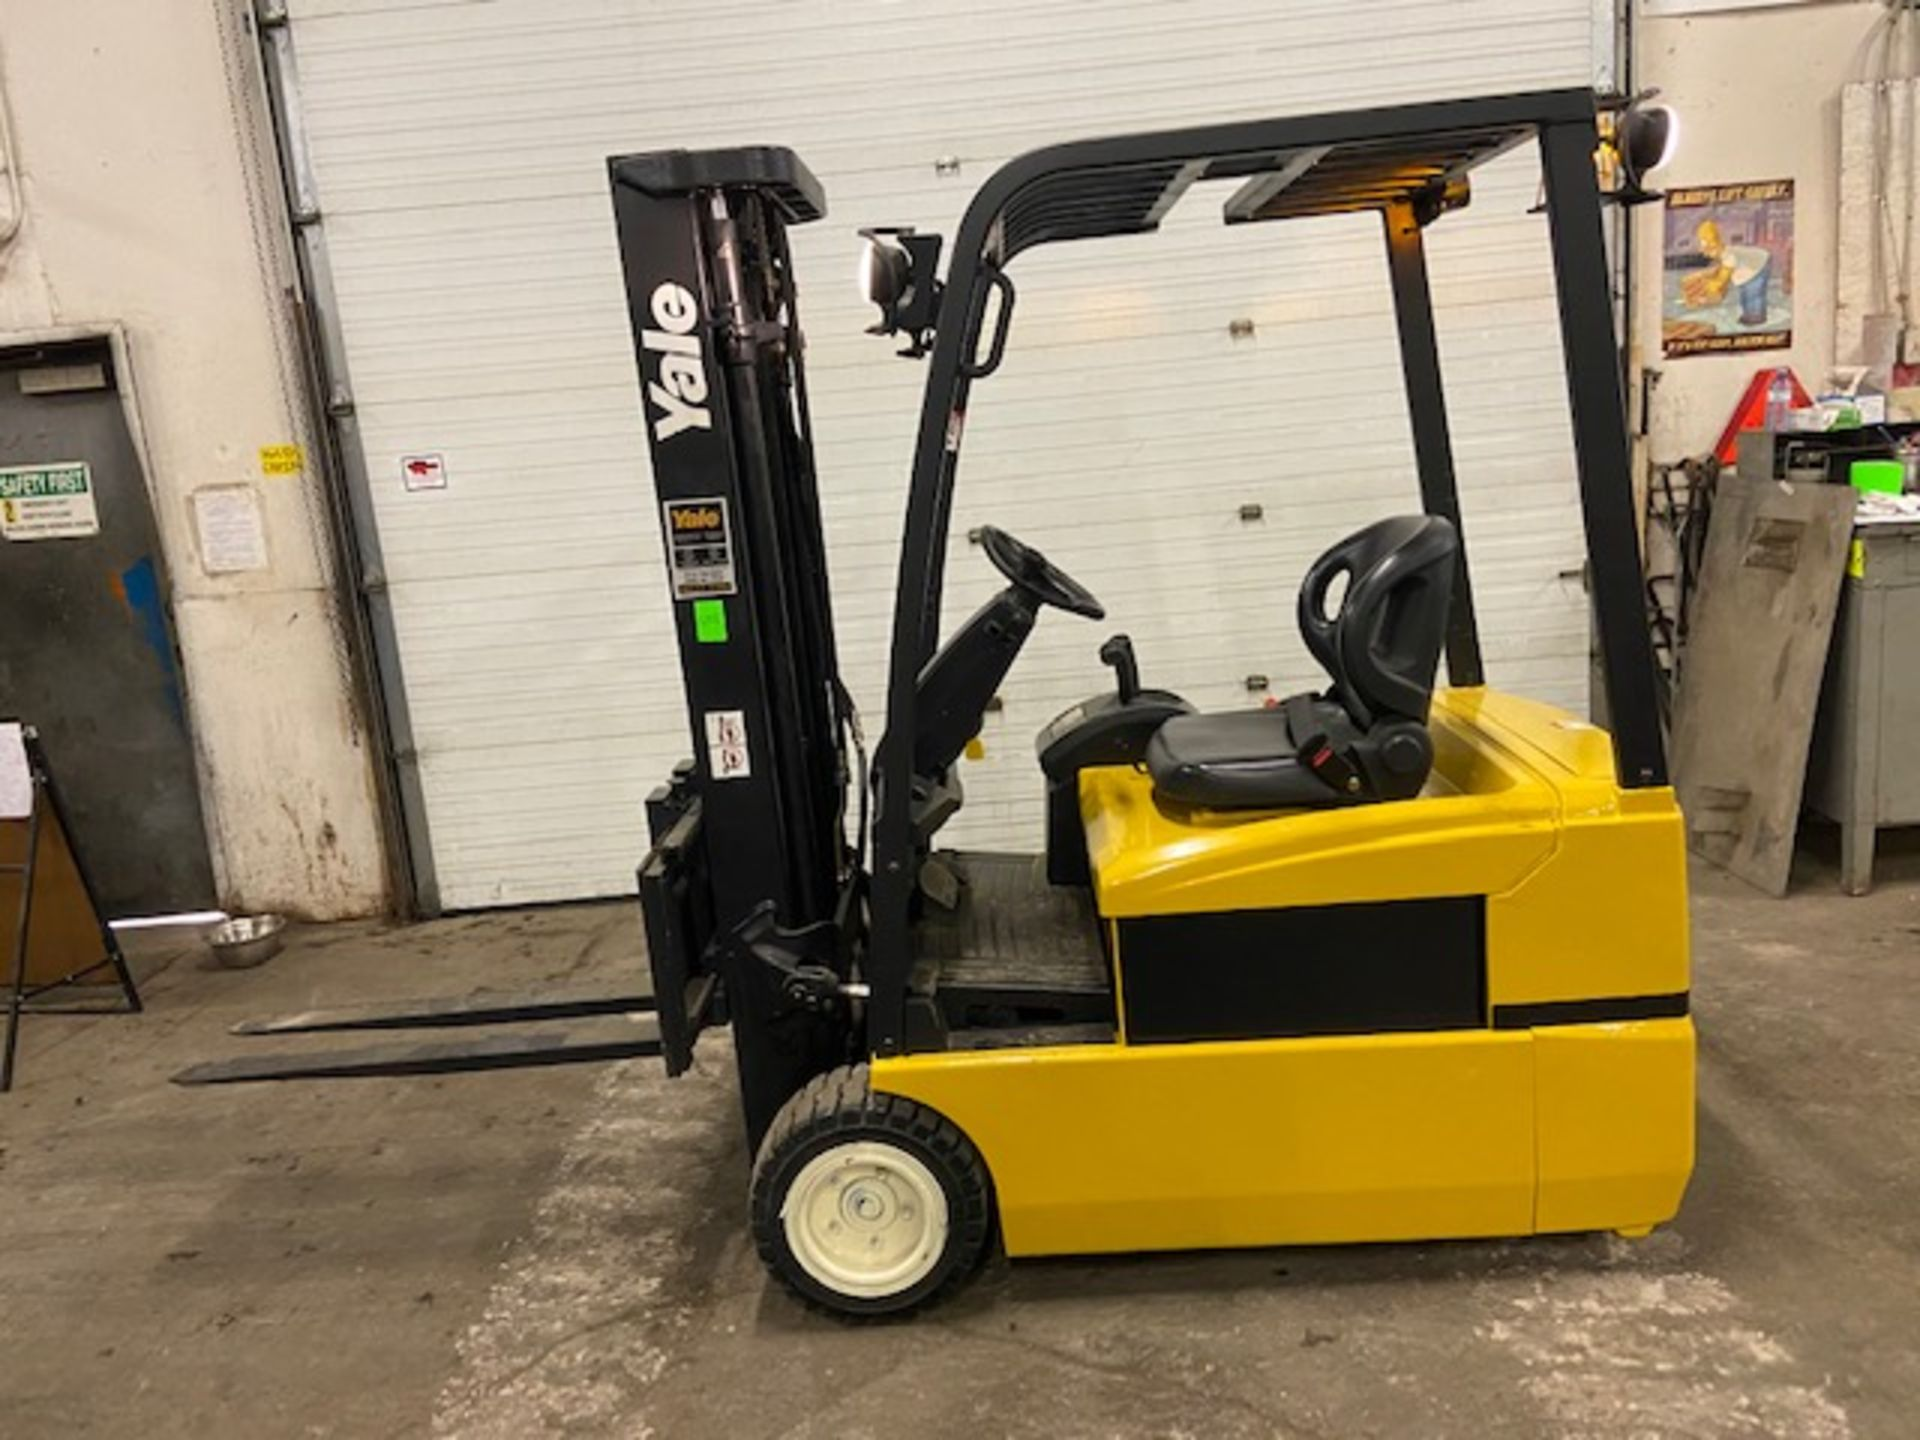 FREE CUSTOMS - Yale 4000lbs Capacity 3-wheel Forklift Electric with 3-stage mast with sideshift with